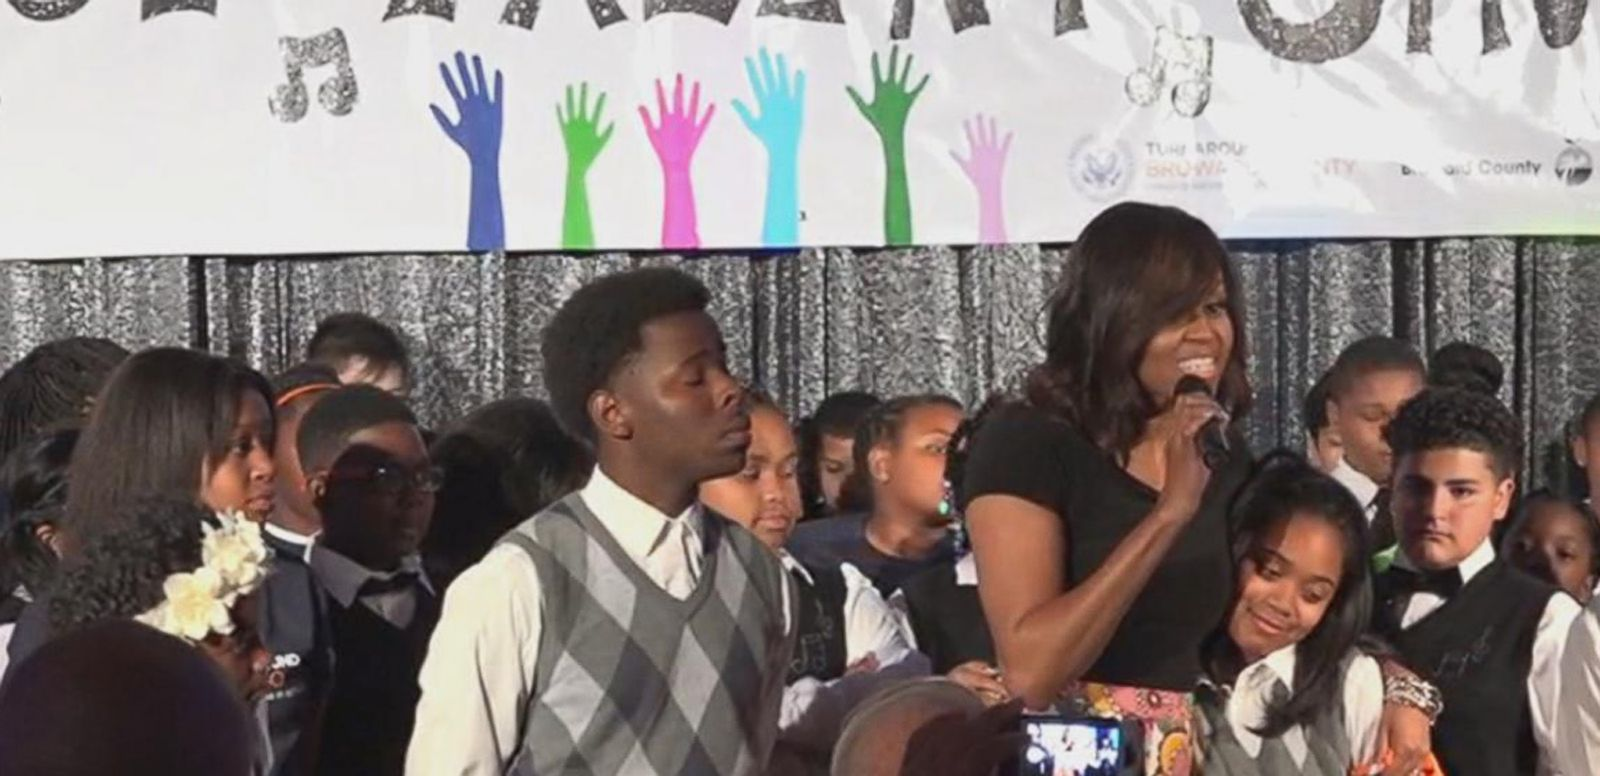 VIDEO: Michelle Obama Hosts Turnaround Talent Show at the White House